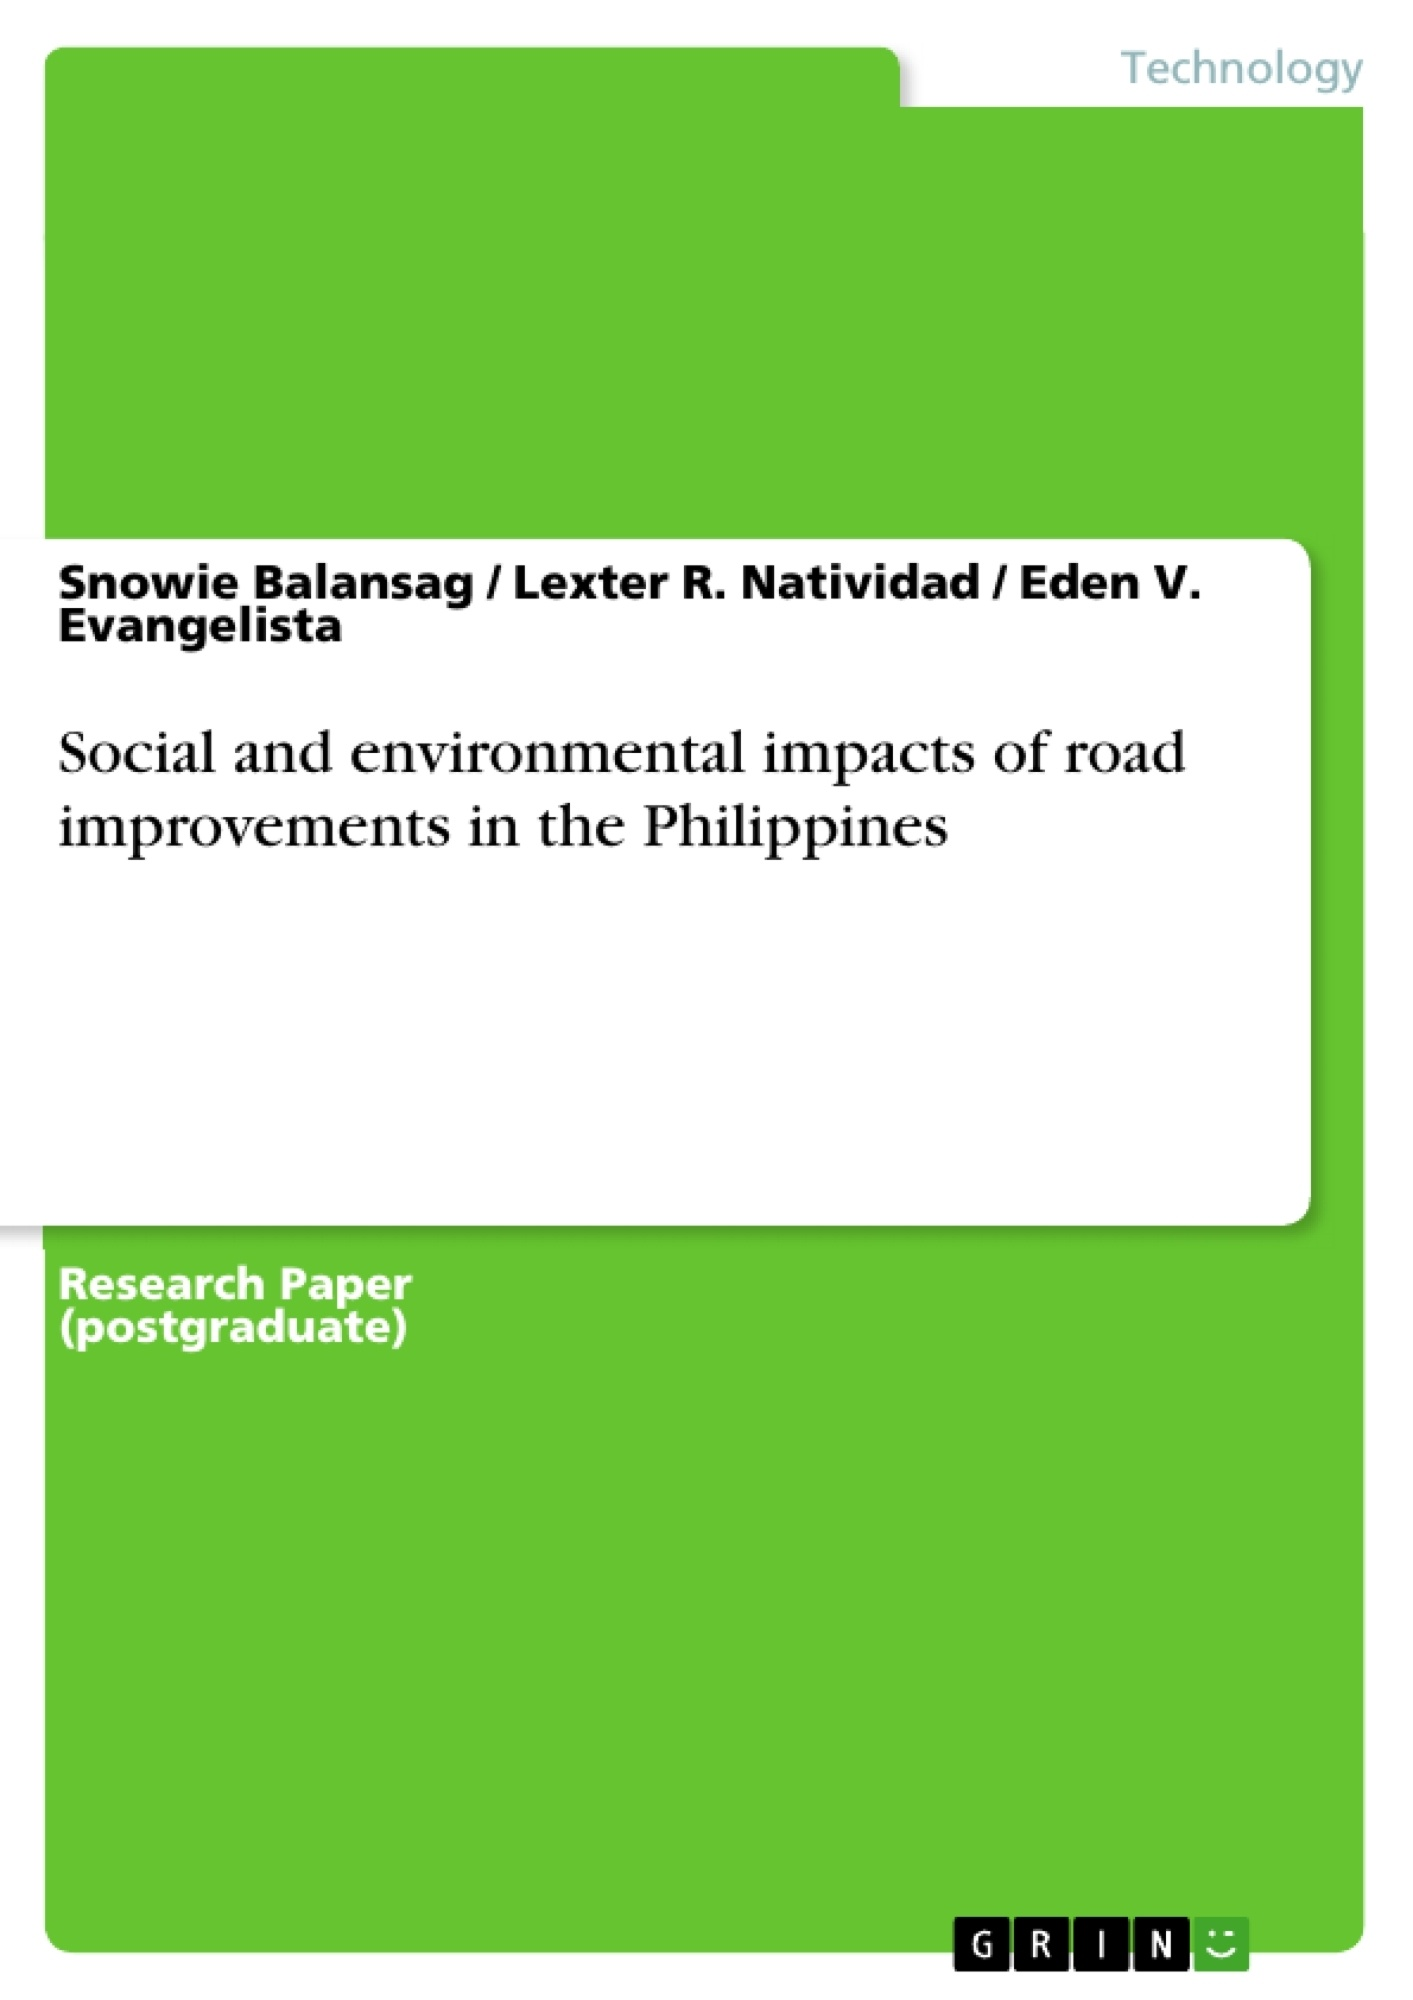 Title: Social and environmental impacts of road improvements in the Philippines